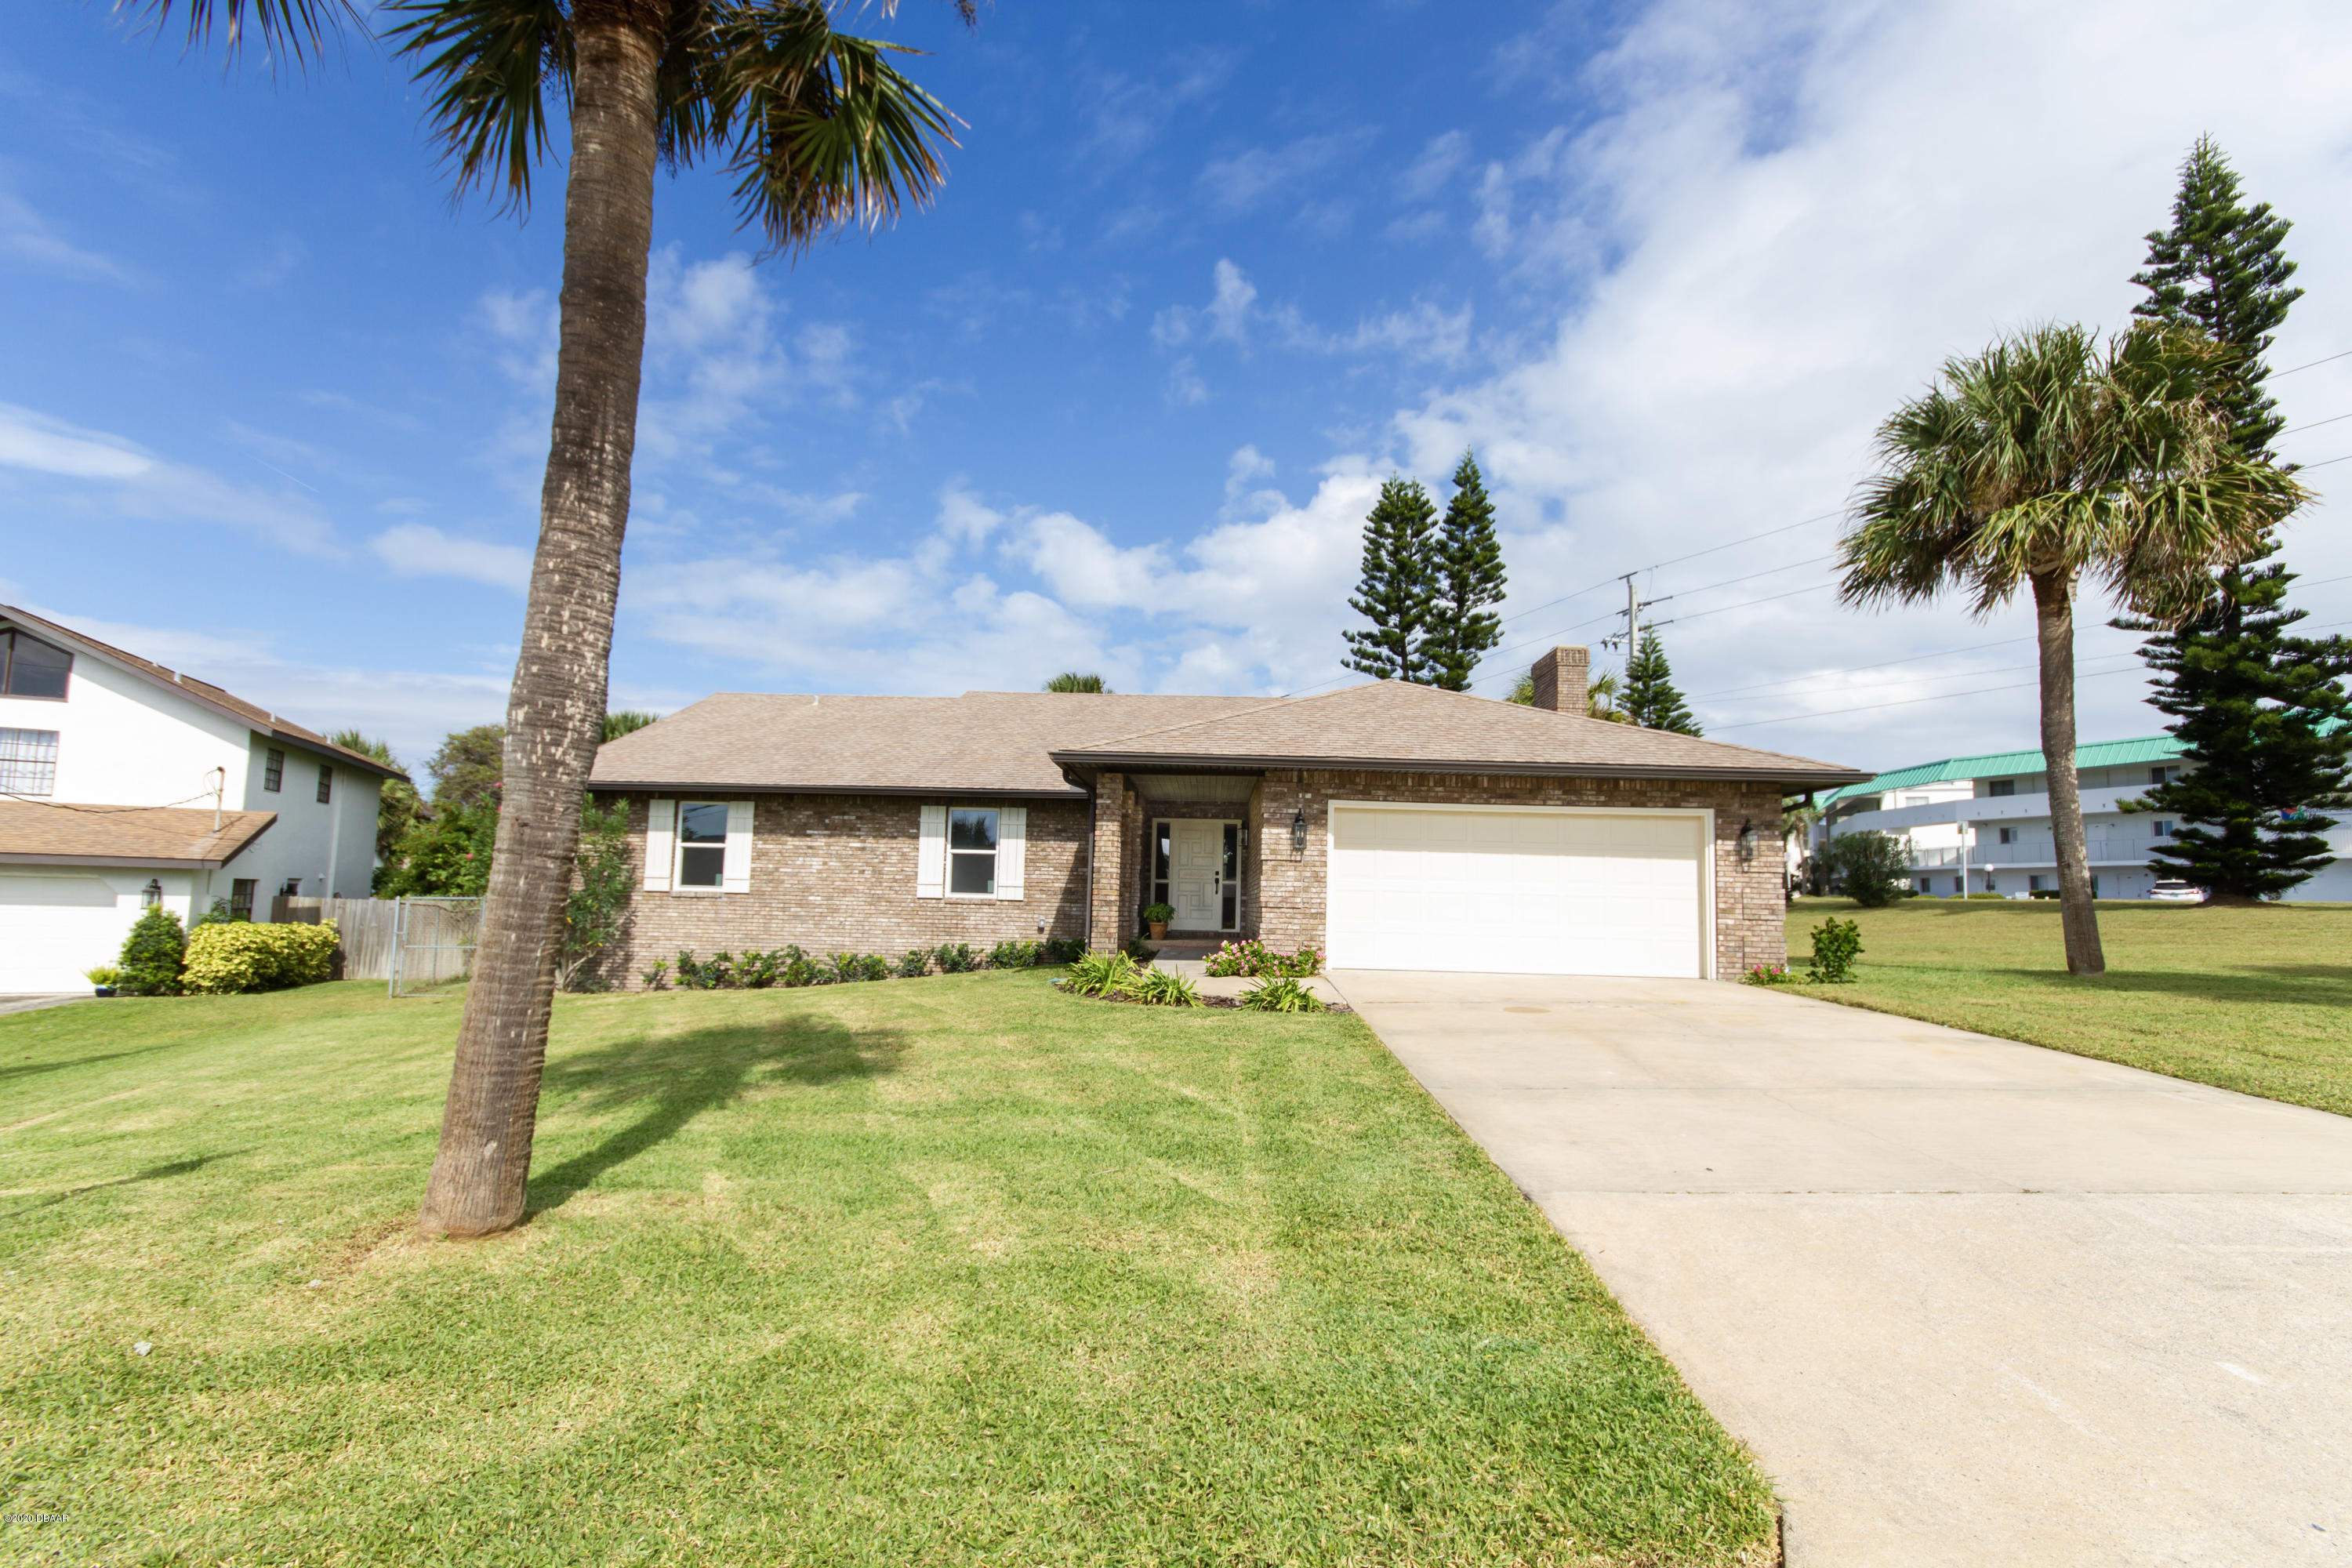 Photo of 229 Standish Drive, Ormond Beach, FL 32176